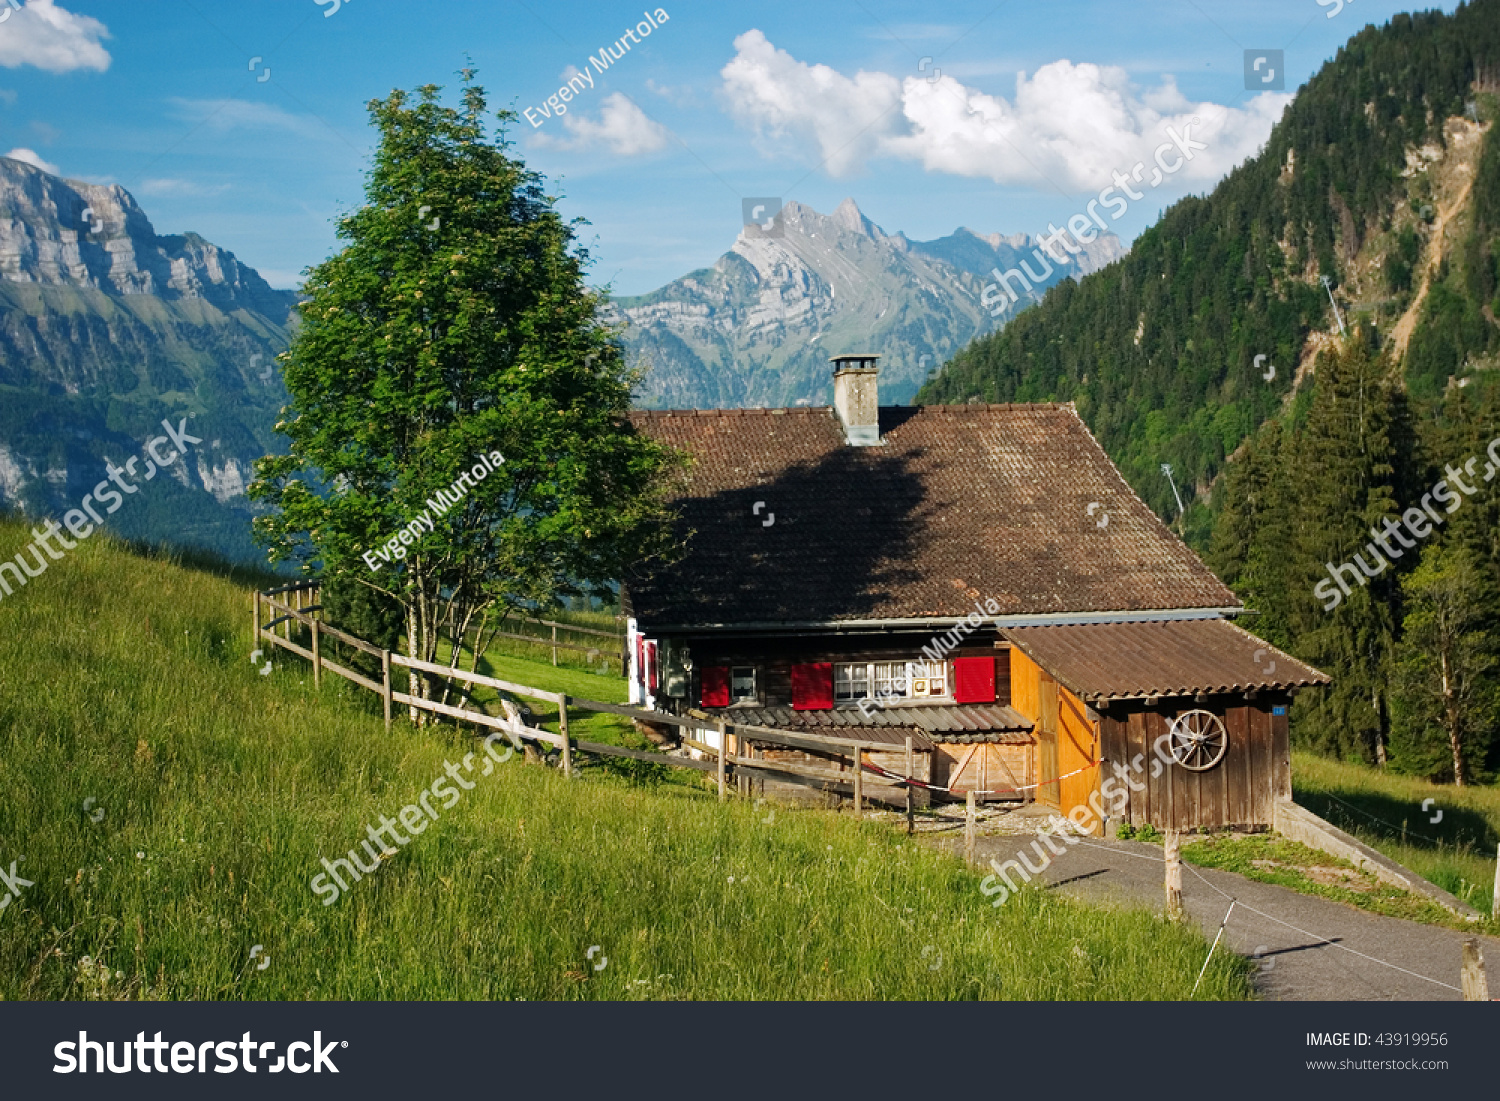 Vacation house in the mountains flumserberg switzerland stock photo 43919956 shutterstock - Summer houses mountains ...